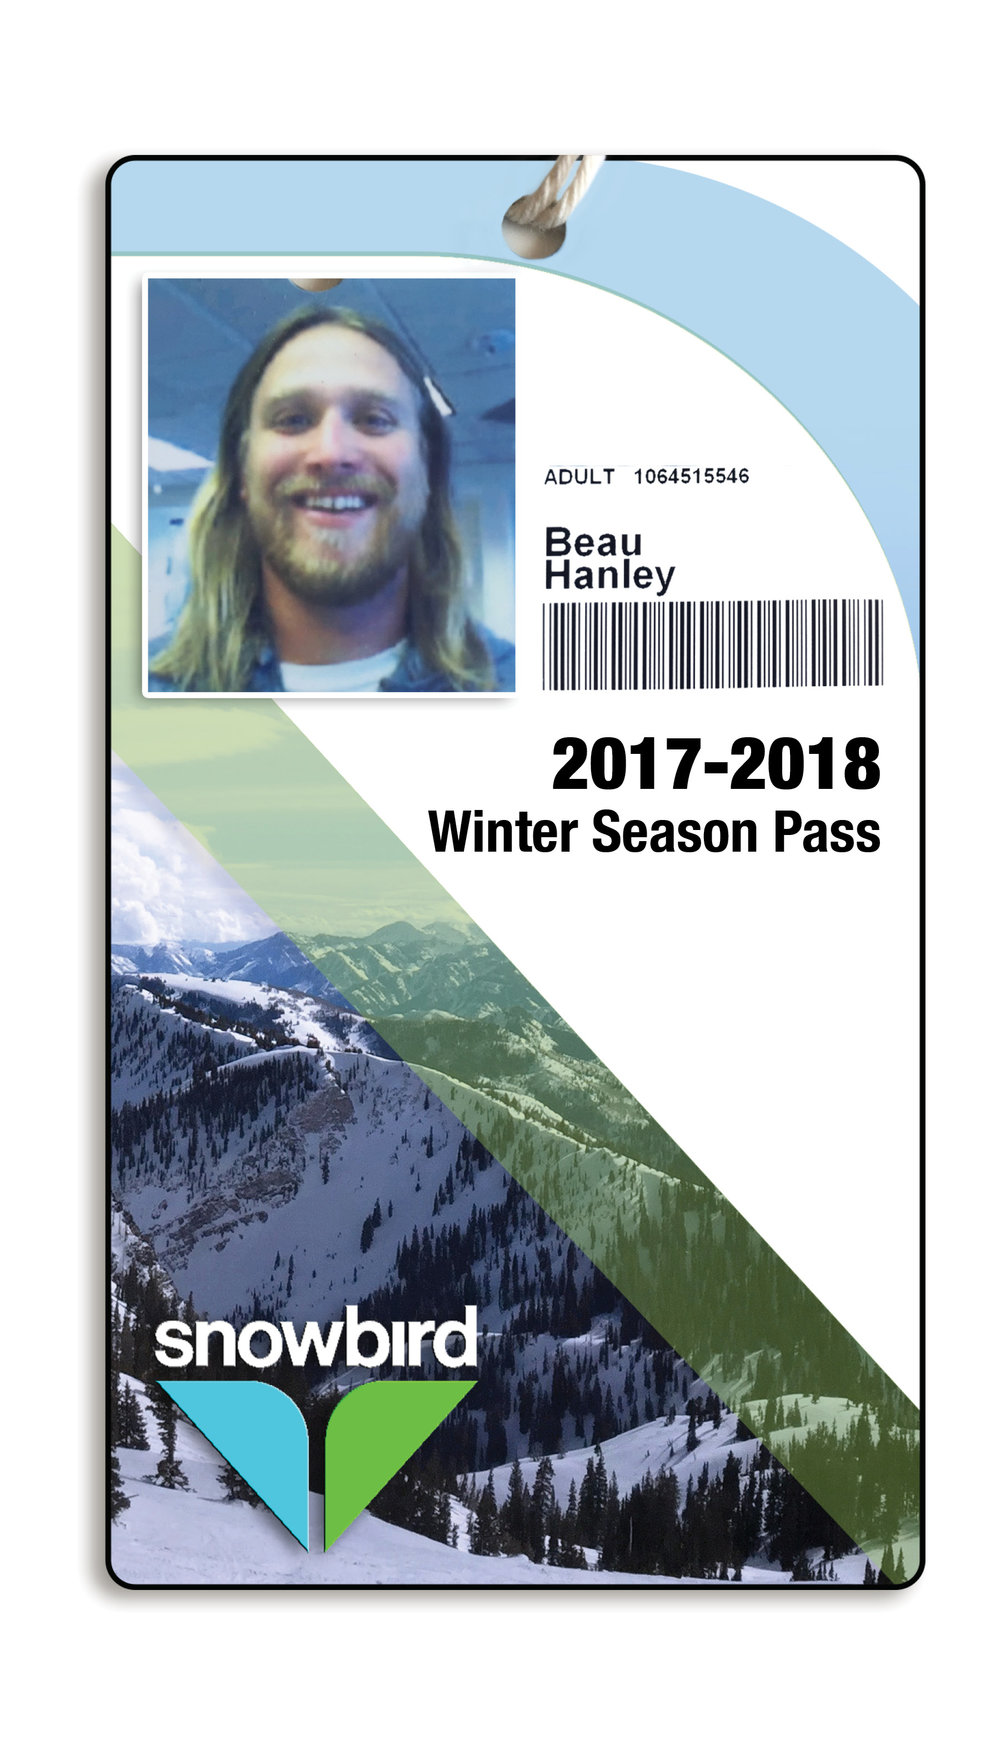 - Branded Season PassThis is a personal project that I created after a week of skiing in Utah for one of my best friend's bachelor party.  Snowbird is an amazing destination for skiers and snowboarders from all over the world.  It snows a ton and the views are breathtaking.  I shot the photos, edited the photos and created this brochure and season pass. This pass goes along with the branding from the brochure I designed.